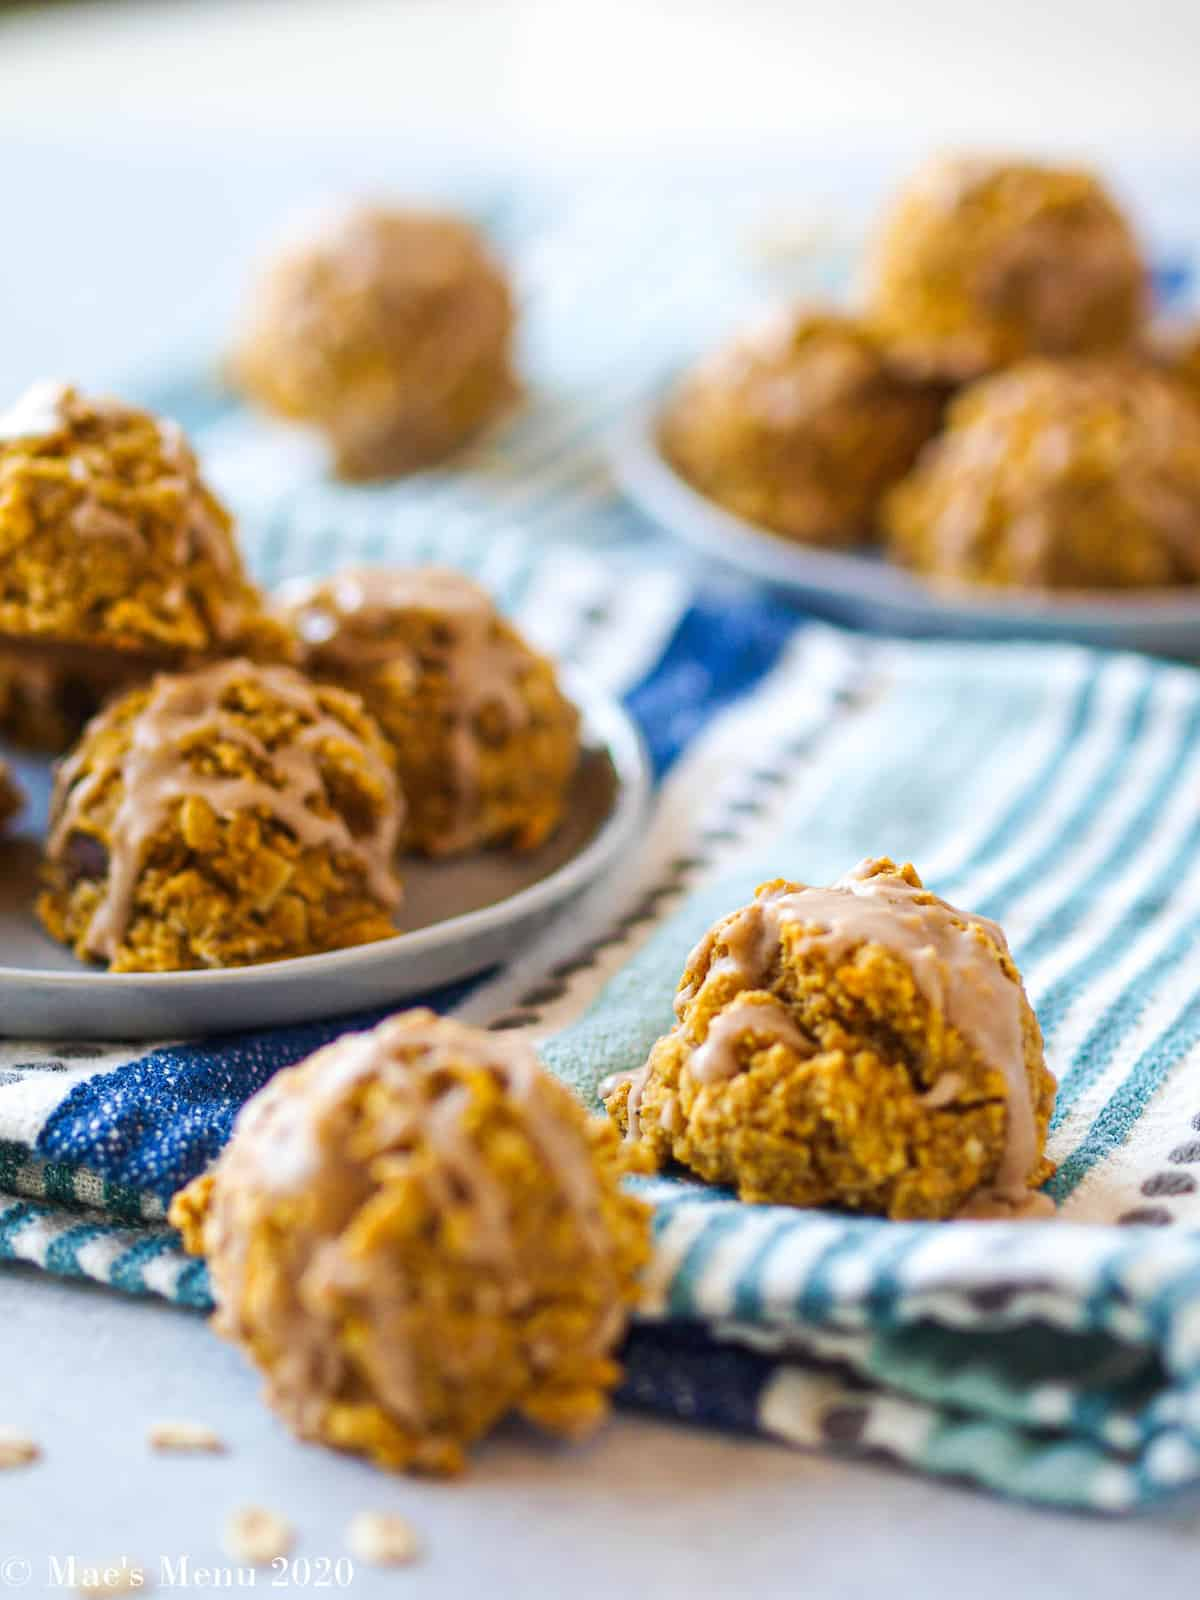 Oatmeal pumpkin cookies on a dish with 2 cookies on a towel in front of them